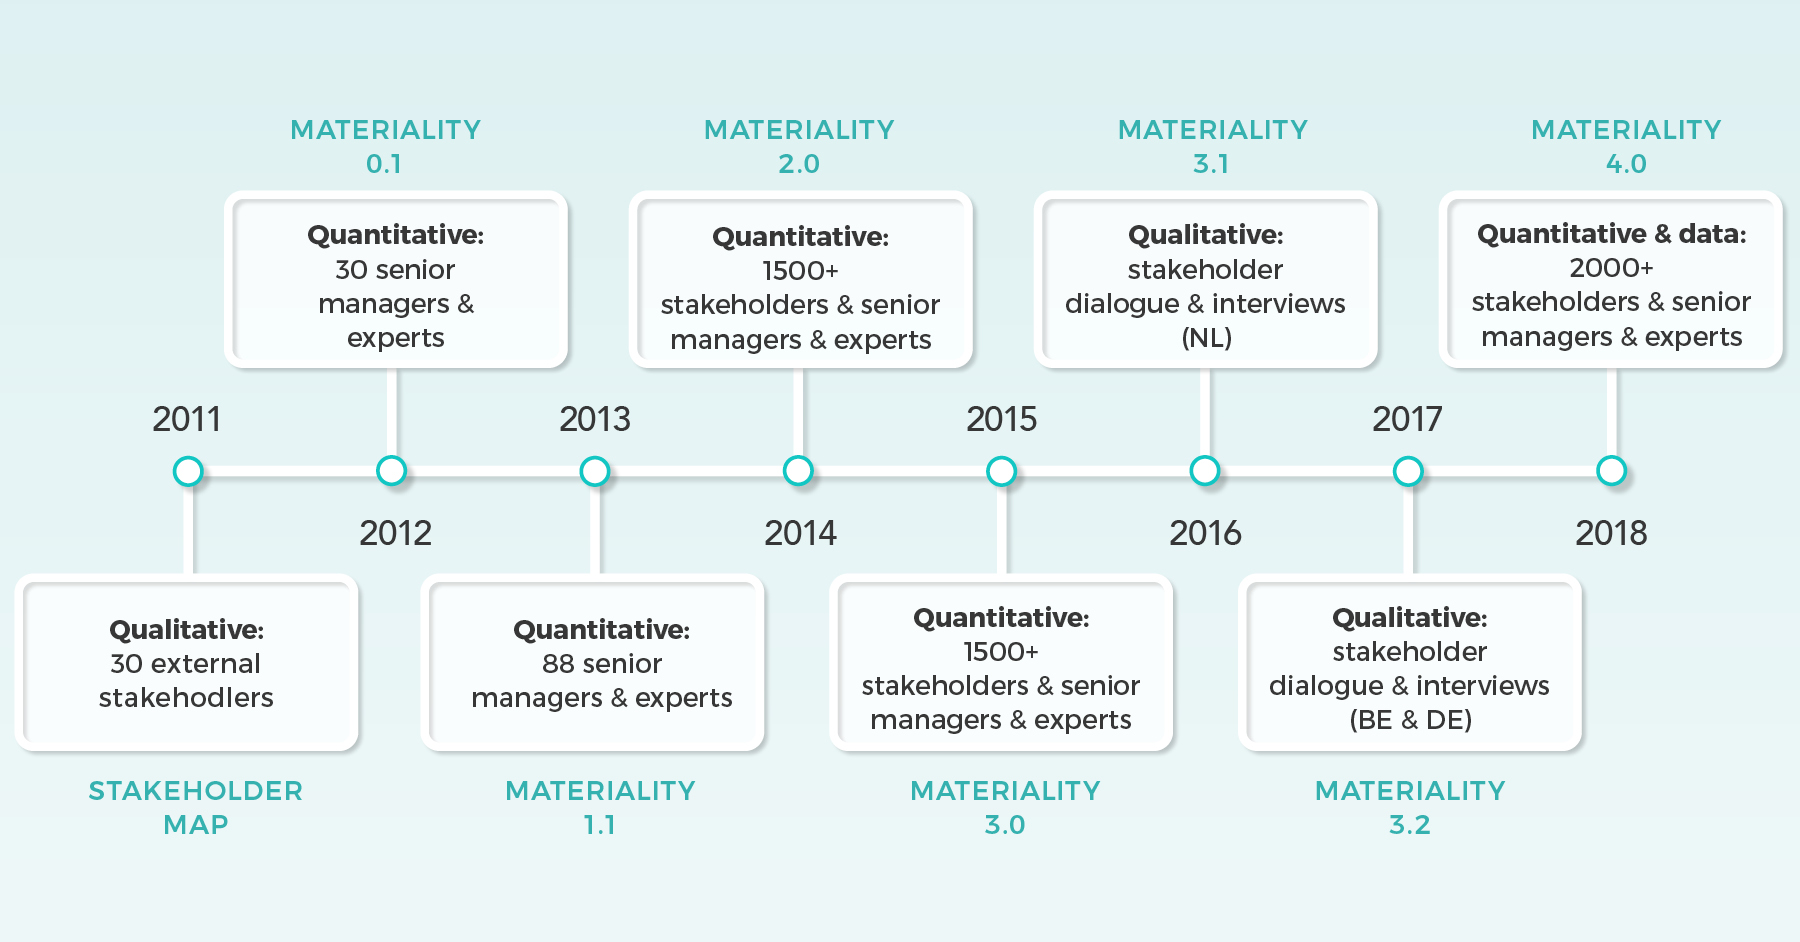 ING Materiality Journey